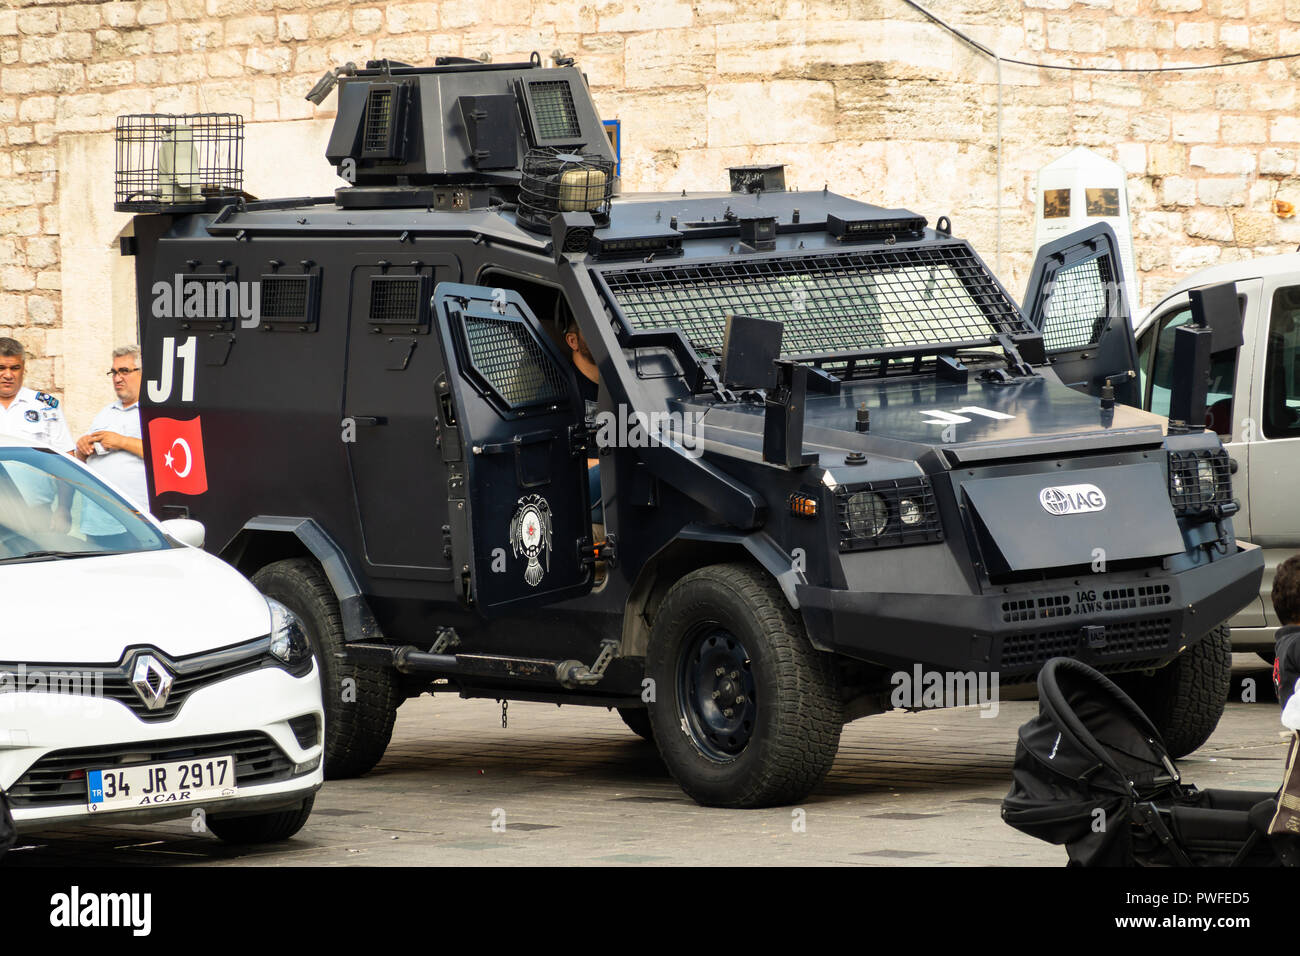 Istanbul, Turkey, September 2018: Martial armoured car of the Turkish police on Taksim Square in the centre of Istanbul - Stock Image